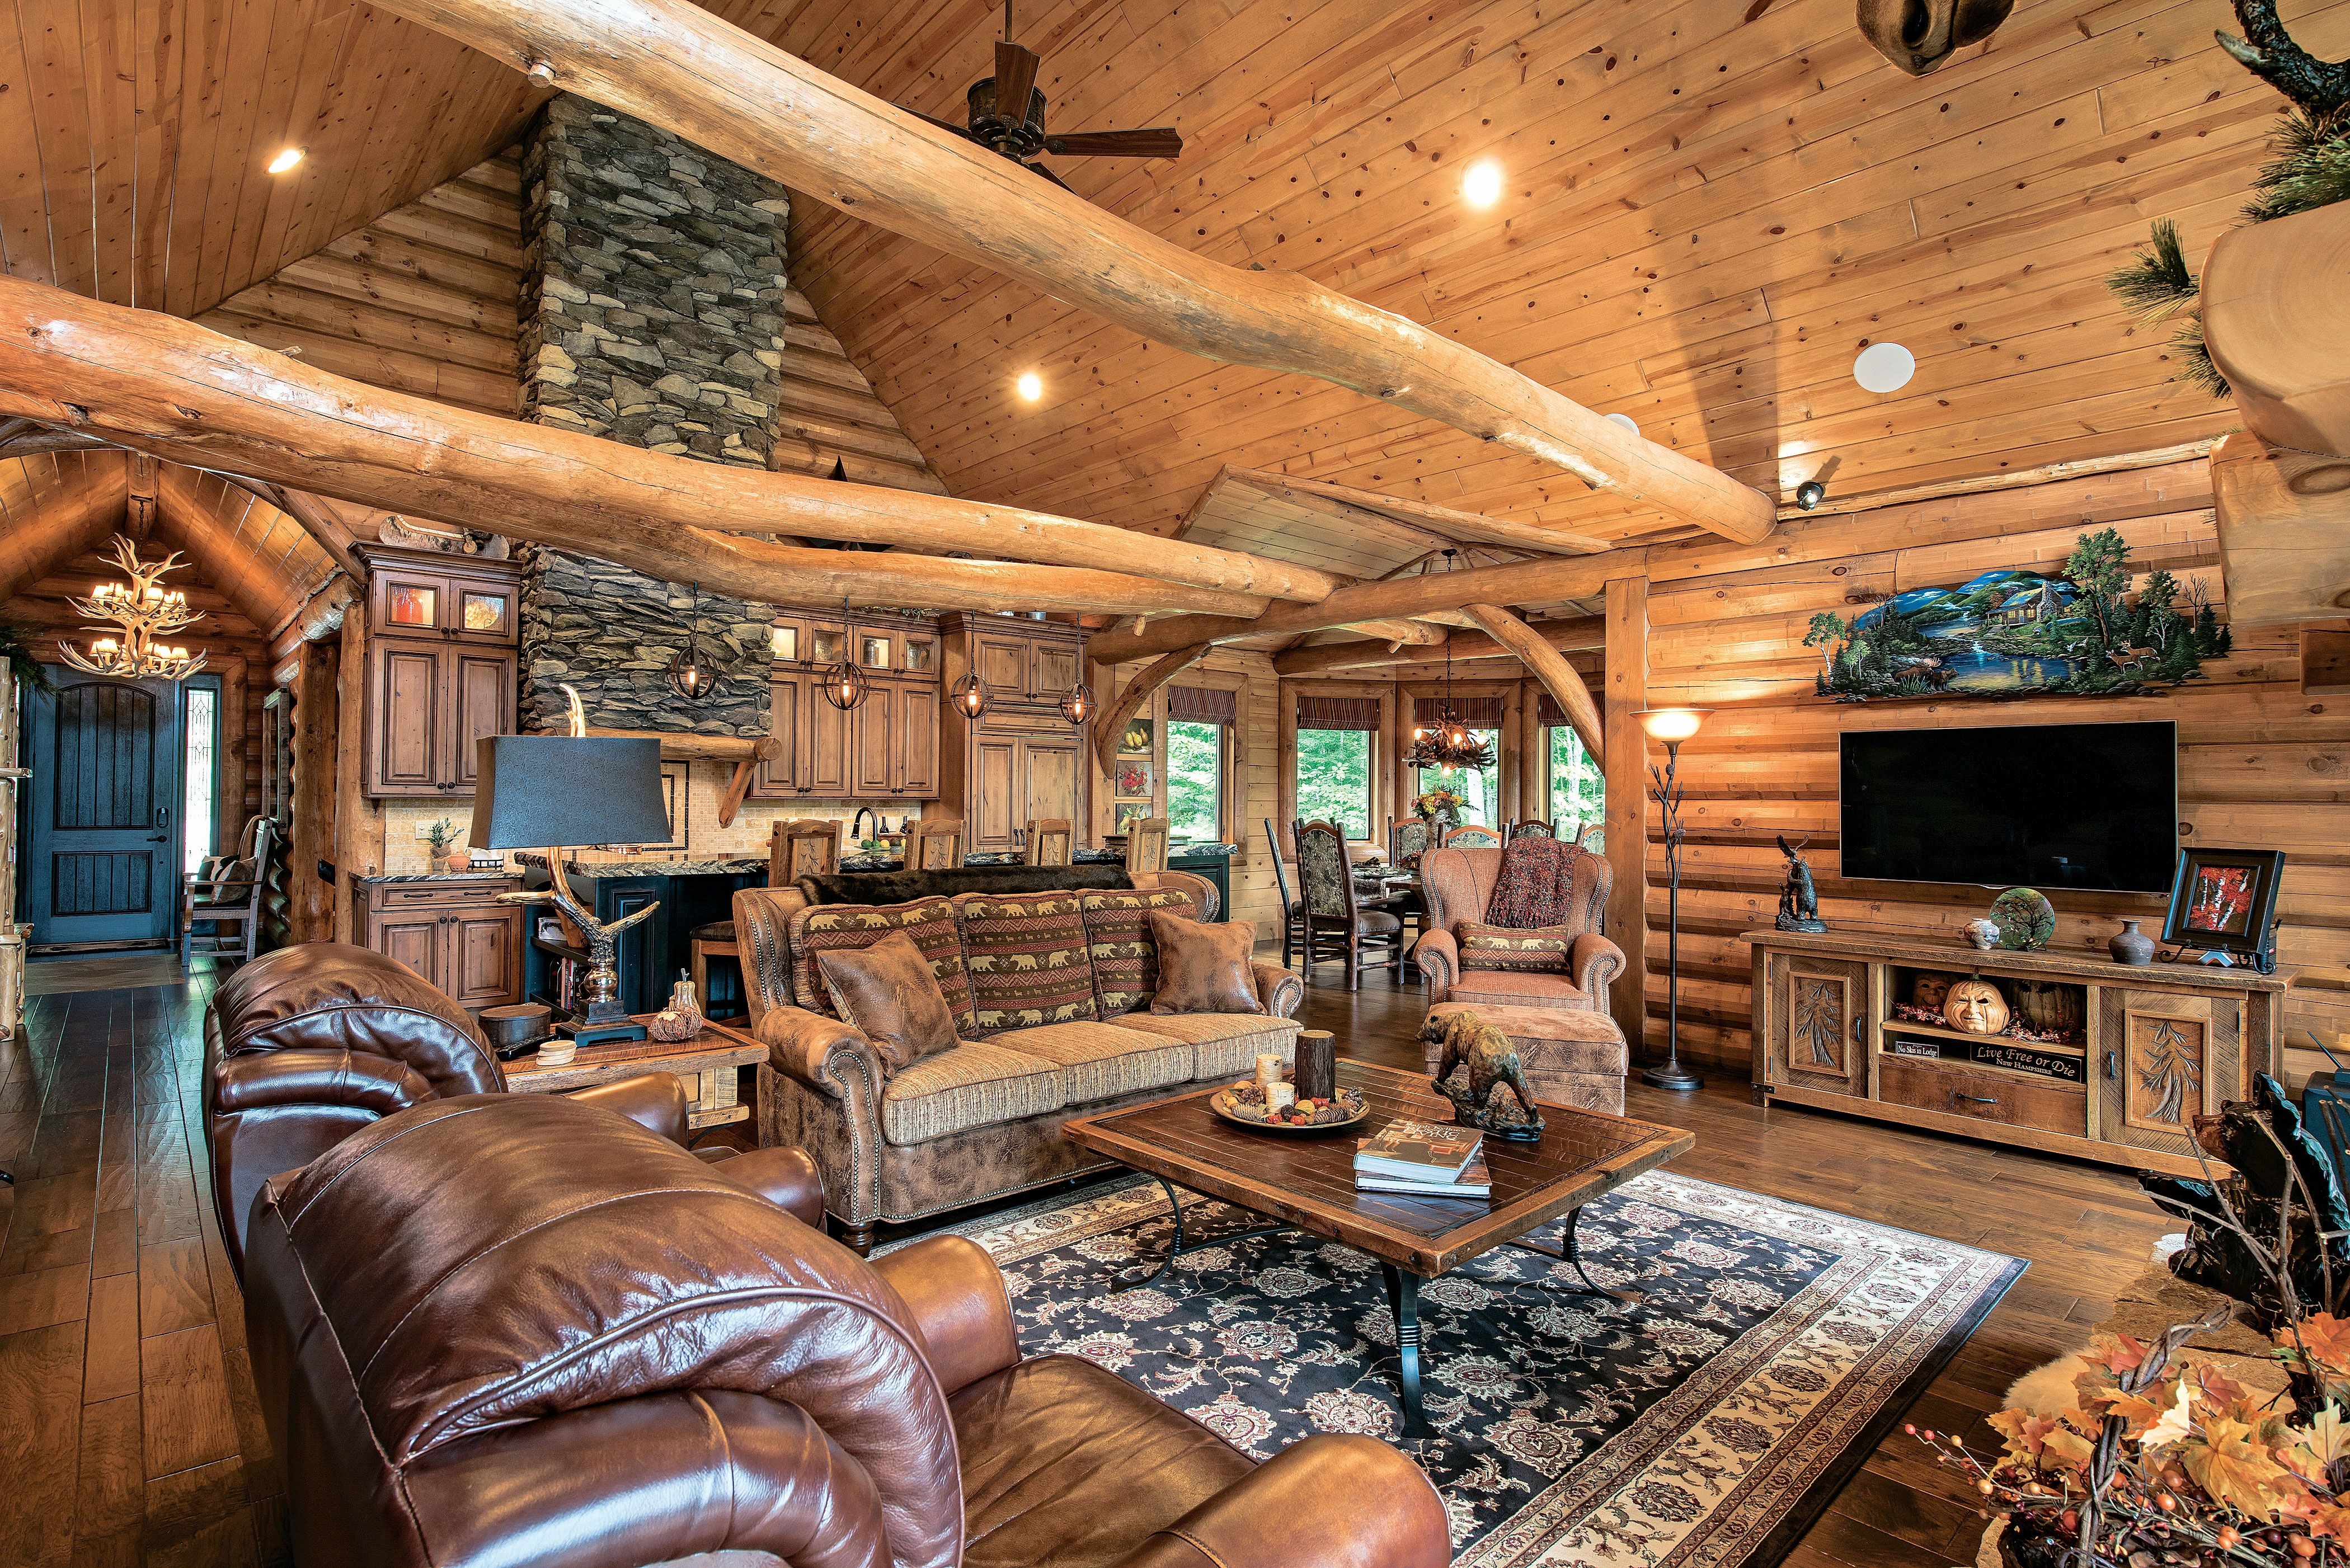 3 Ways To Light A Log Home Rustic Log Cabin Decor Log Cabin Rustic Log Cabin Decor